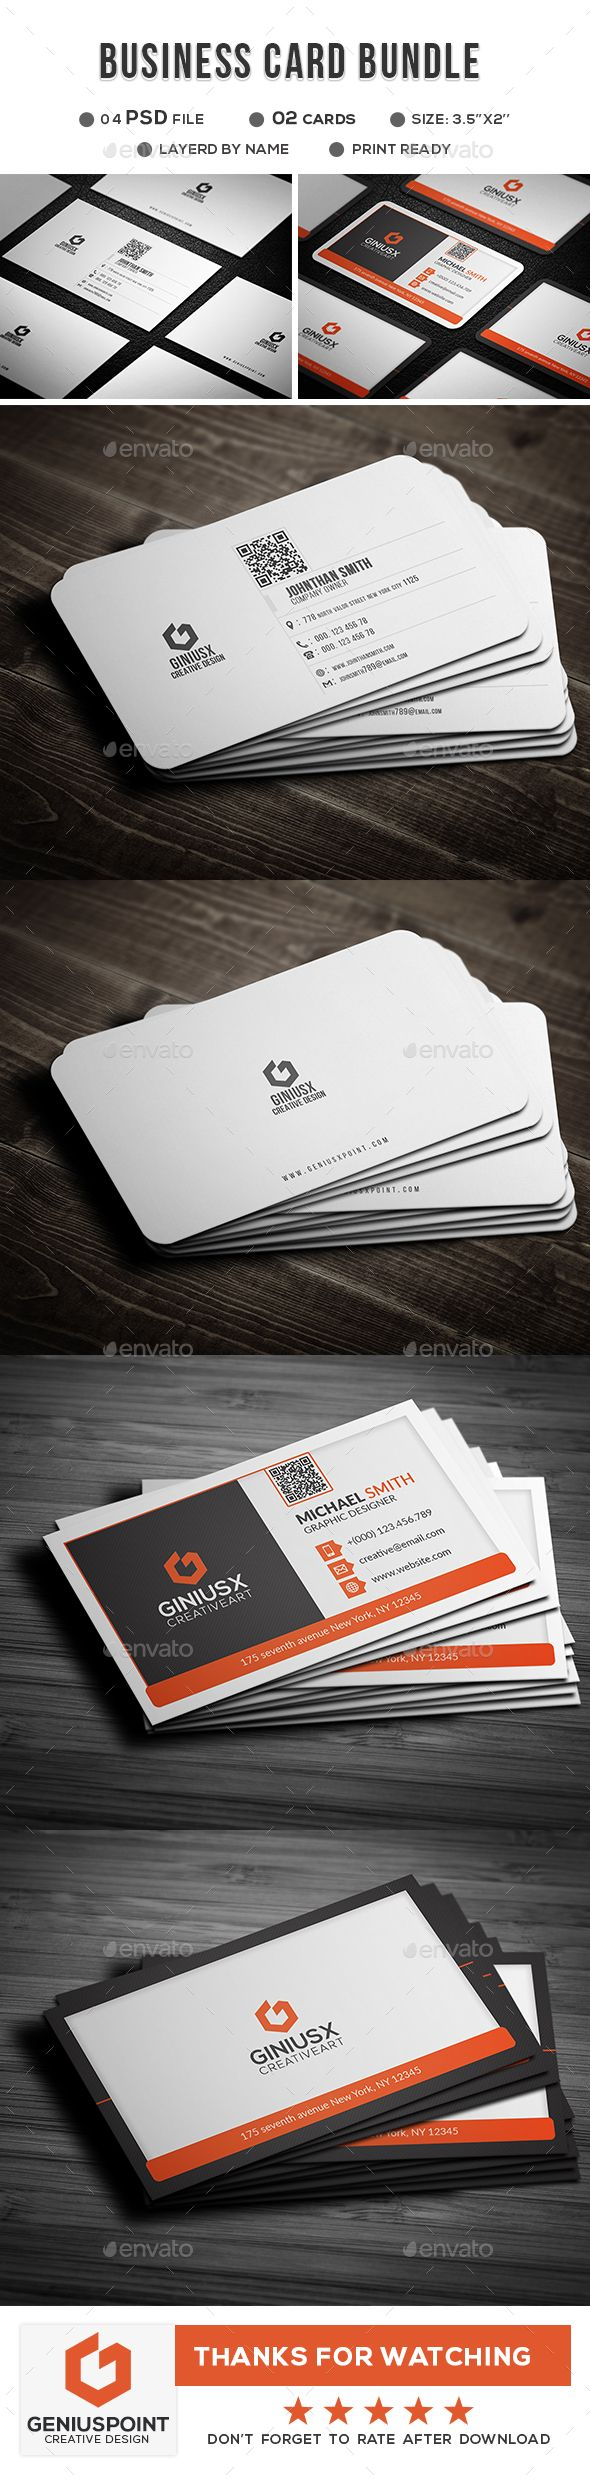 67 best 2018\'s Corporate Business Card Template\'s images on ...